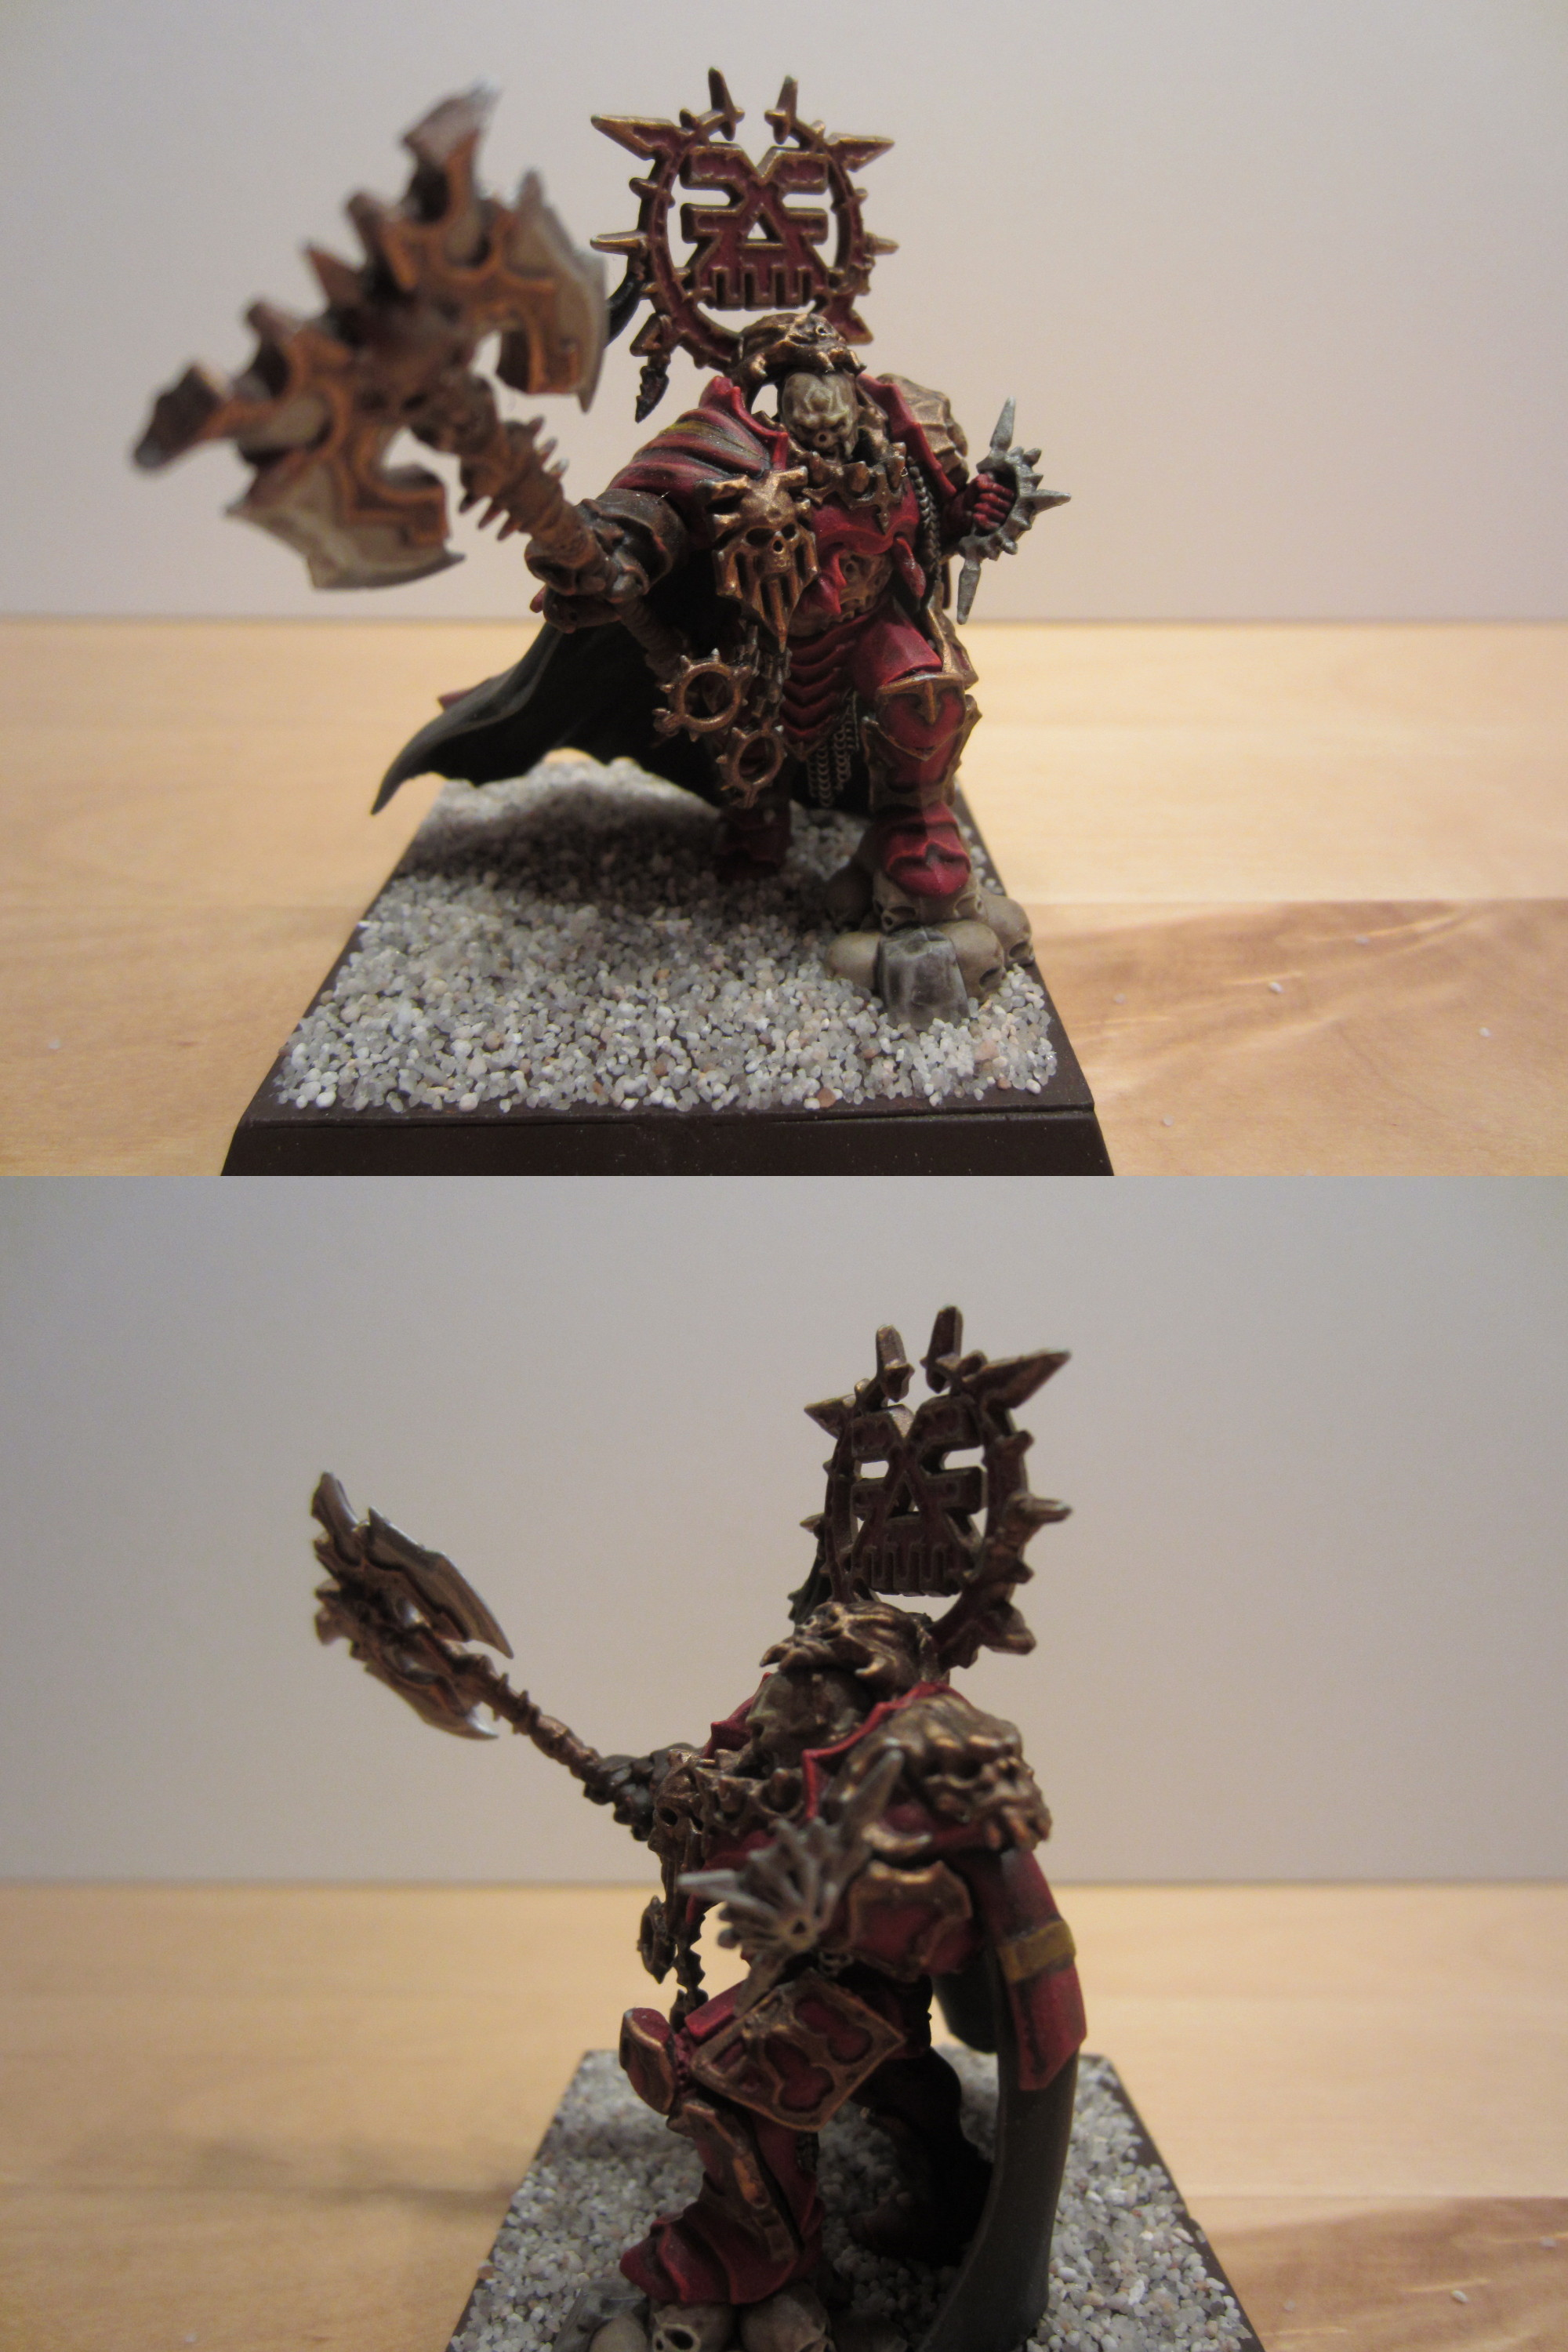 Mighty Lord of Khorne - Vorderansicht